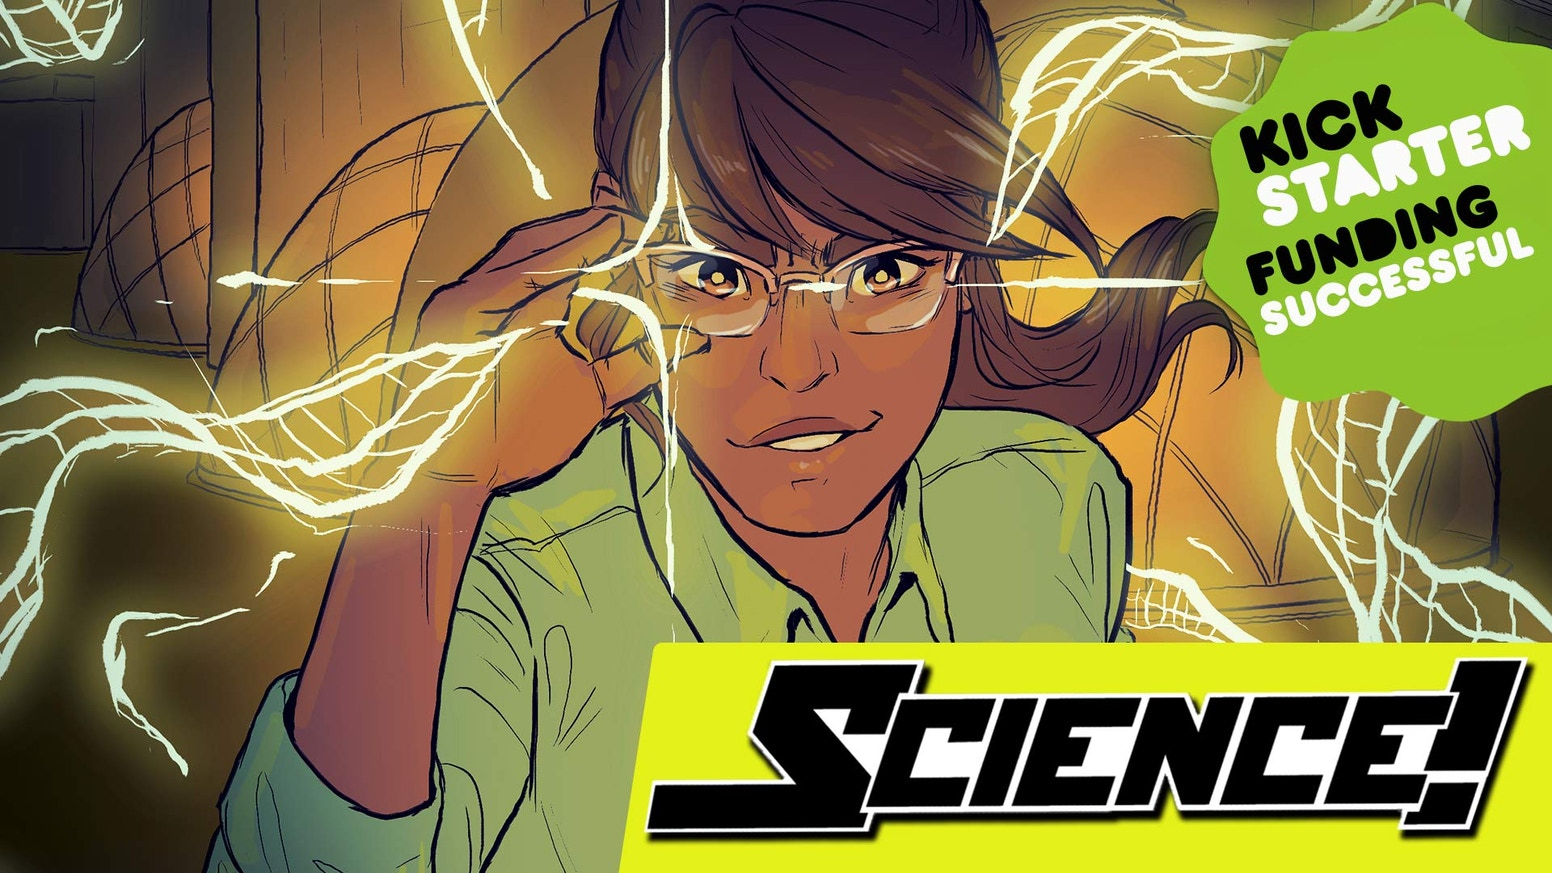 Breaking through dimensions during class is just a normal day at the ultimate SCIENCE school in this 80 page graphic novel.